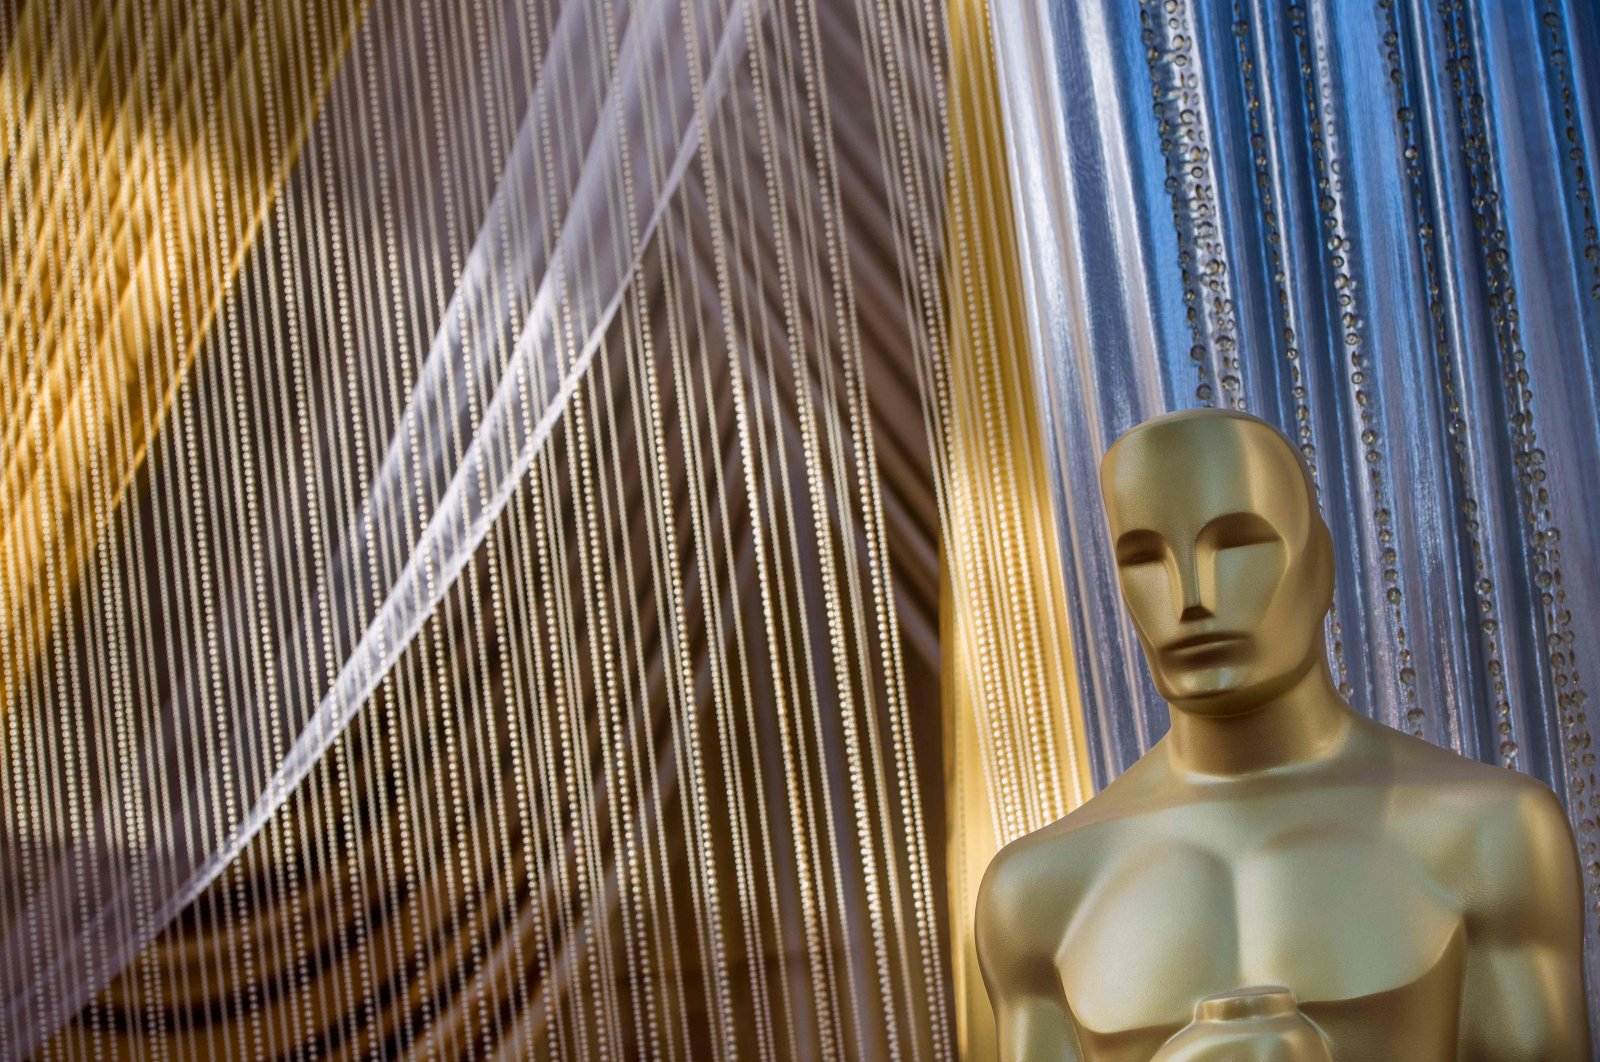 An Oscars statue is displayed on the red carpet area on the eve of the 92nd Oscars ceremony at the Dolby Theatre in Hollywood, California, U.S., Feb. 8, 2020. (AFP Photo)